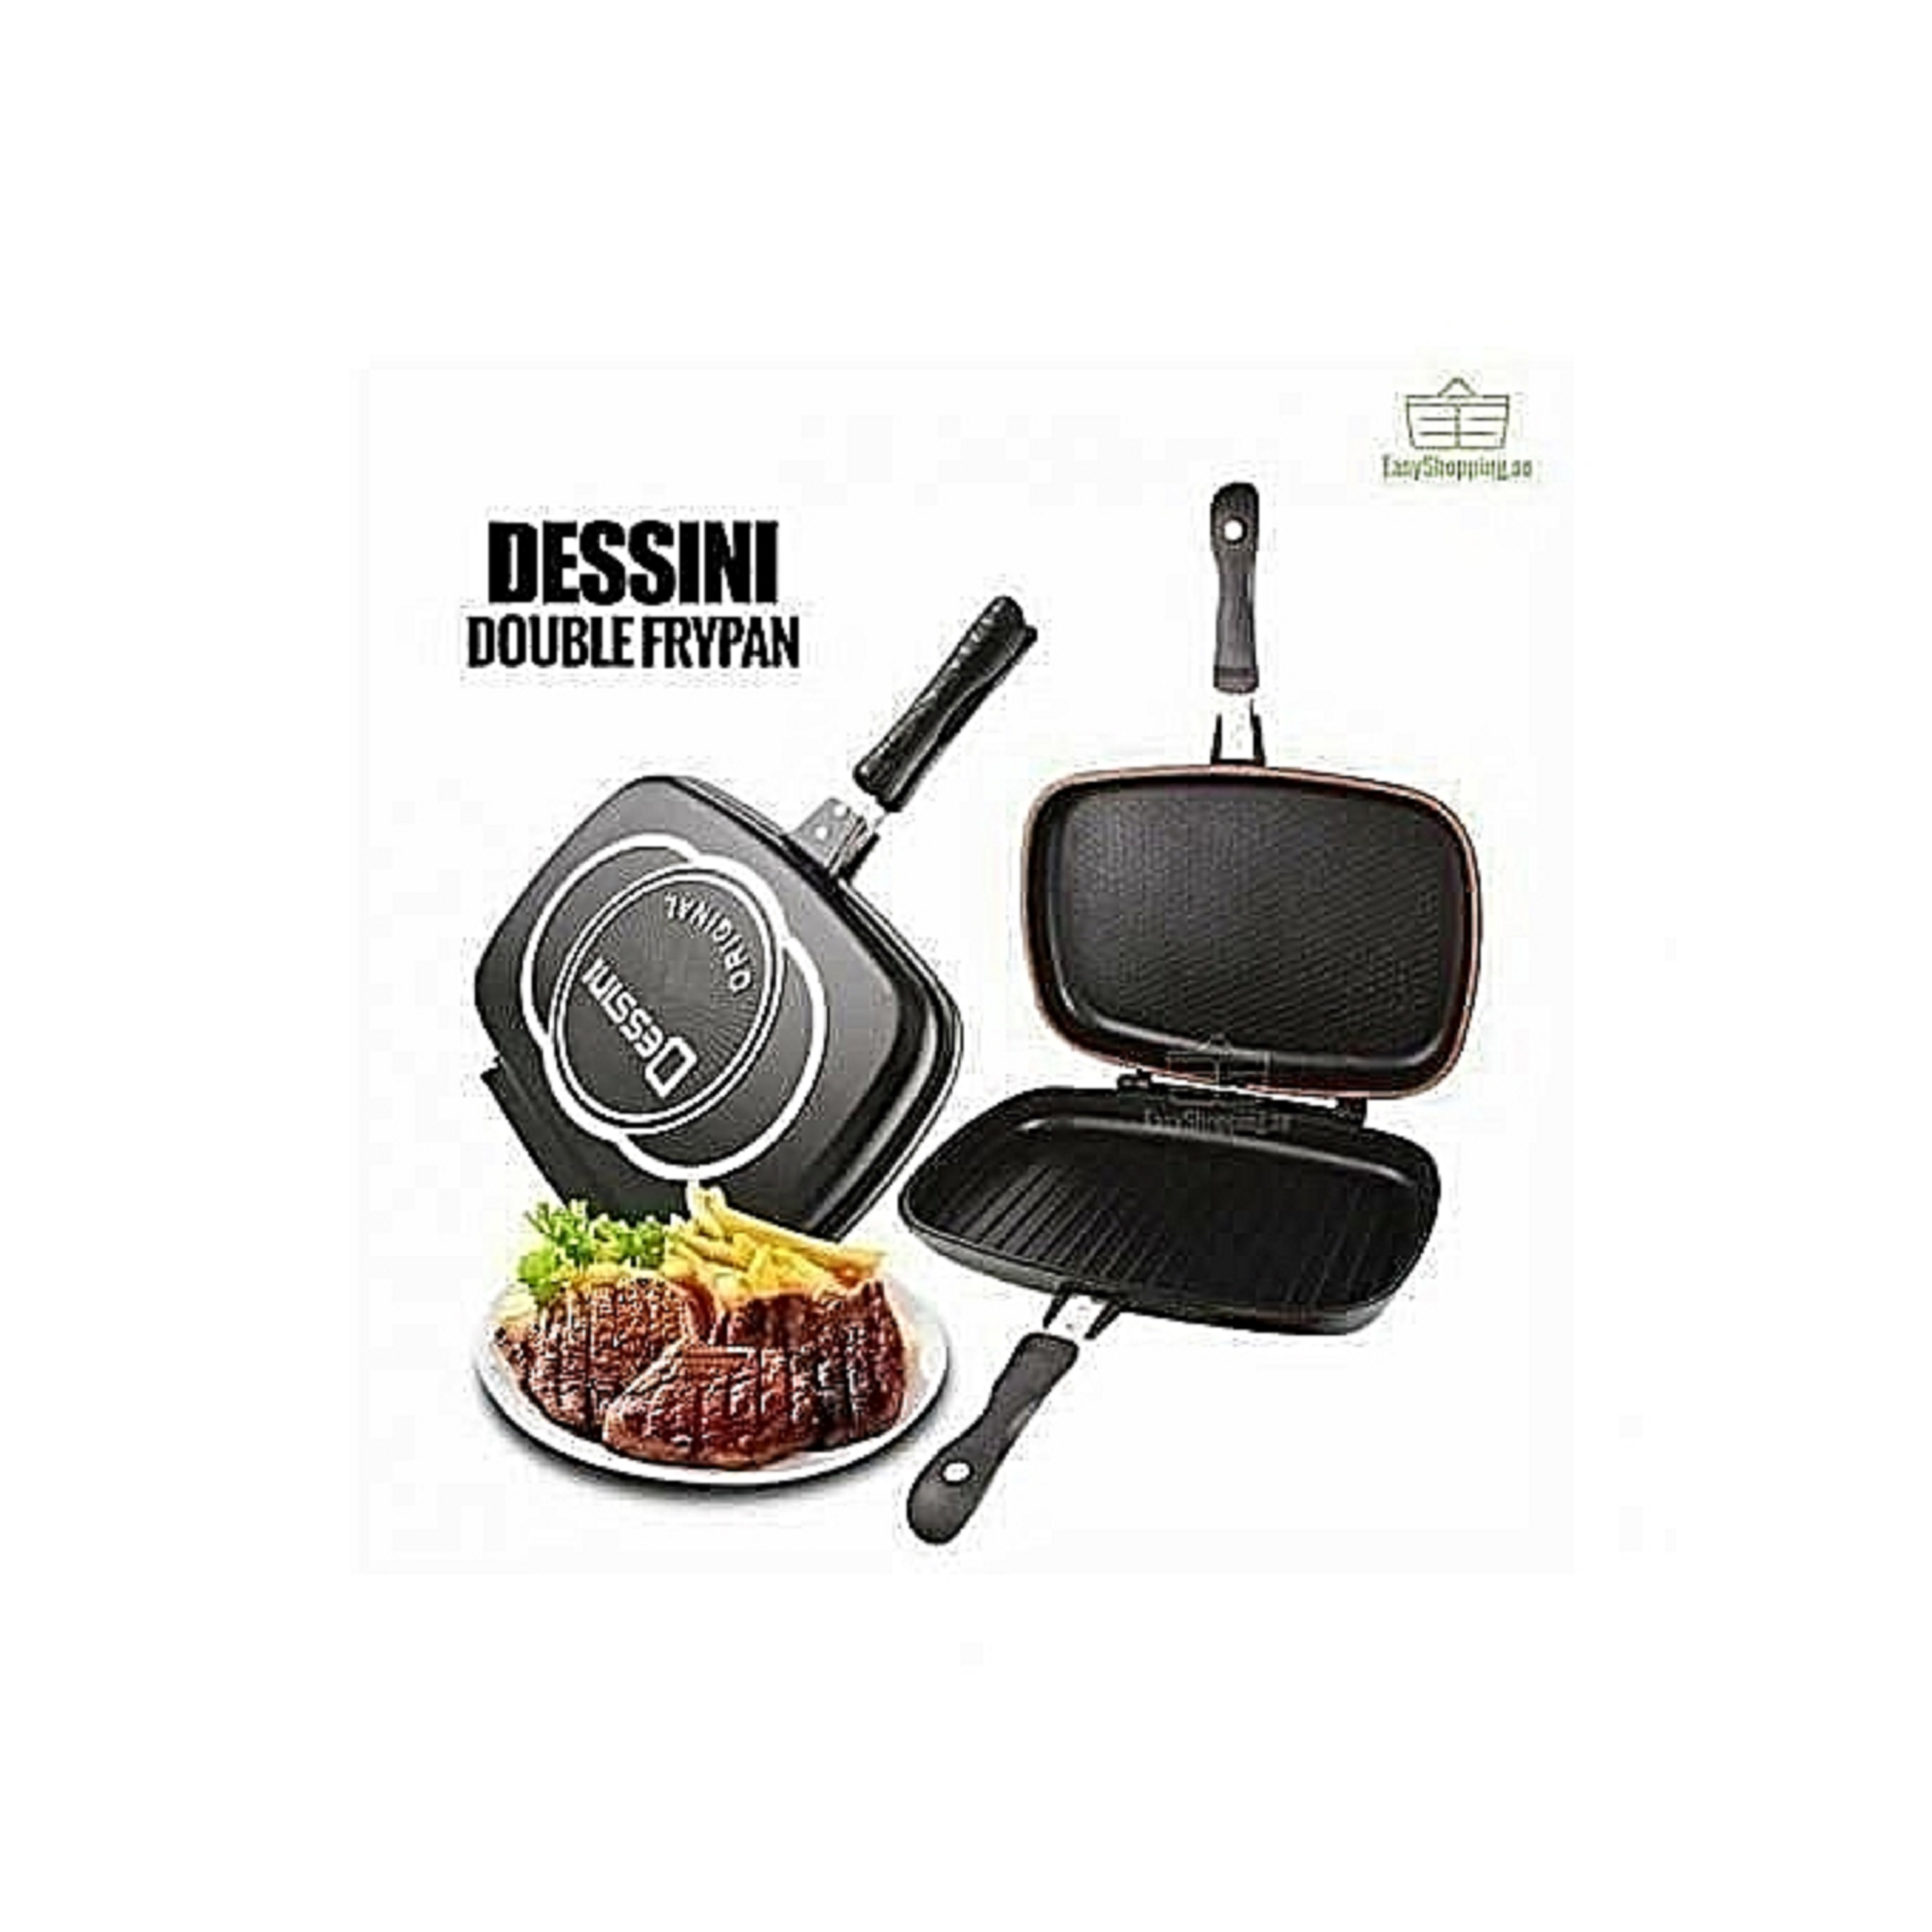 Double Grill Non-stick PressuAre Pan 36cm - Black.